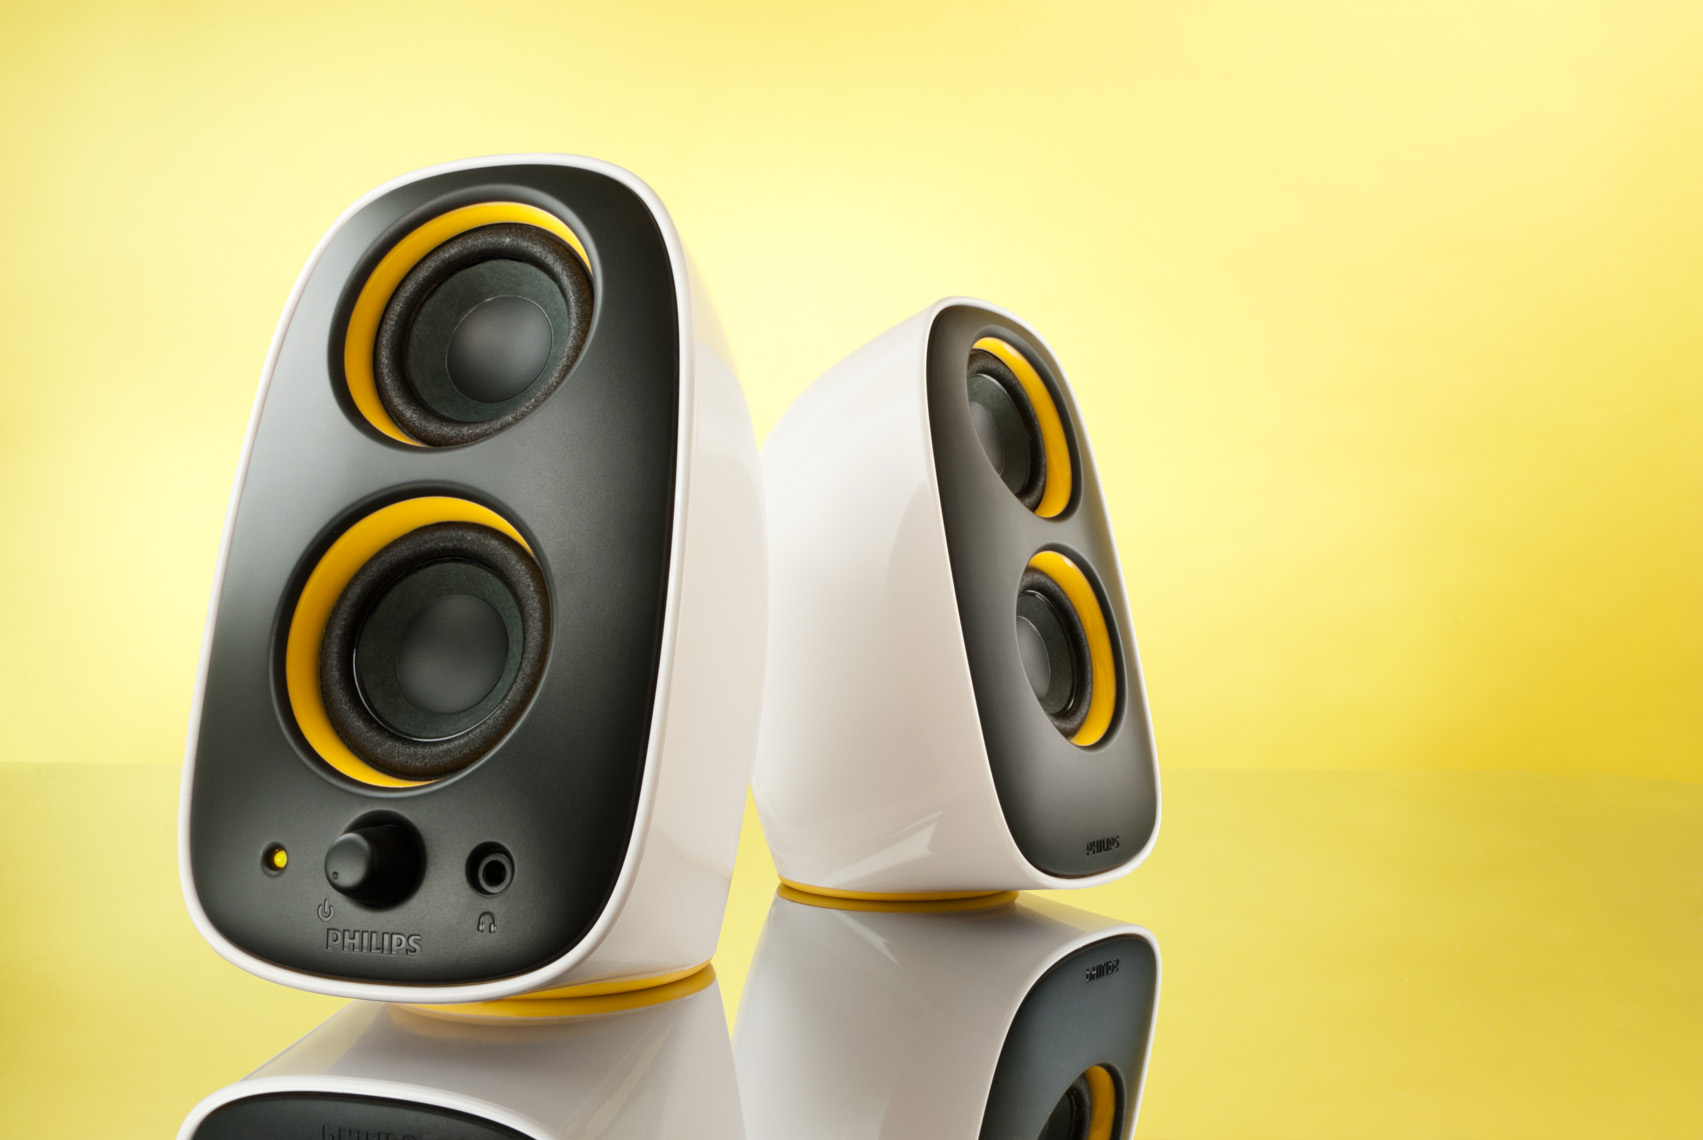 White_Phillips_Desktop_Speakers